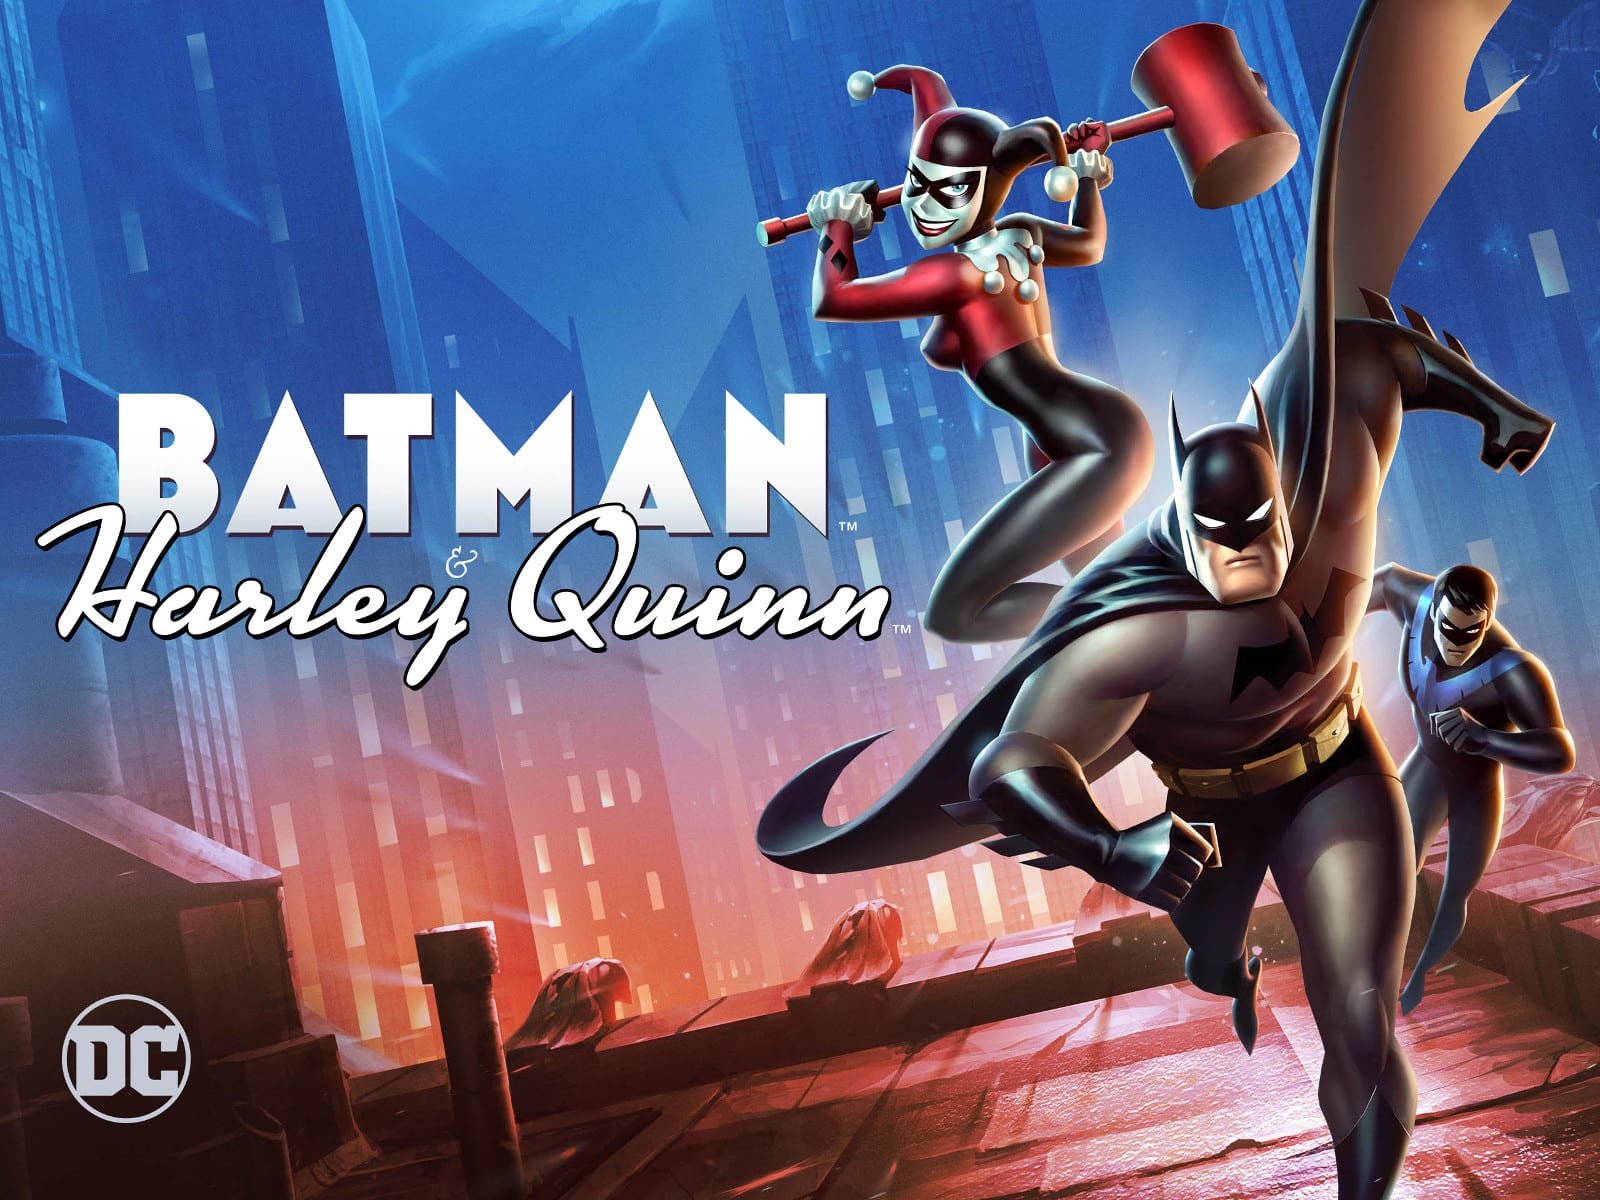 REVIEW – Batman & Harley Quinn